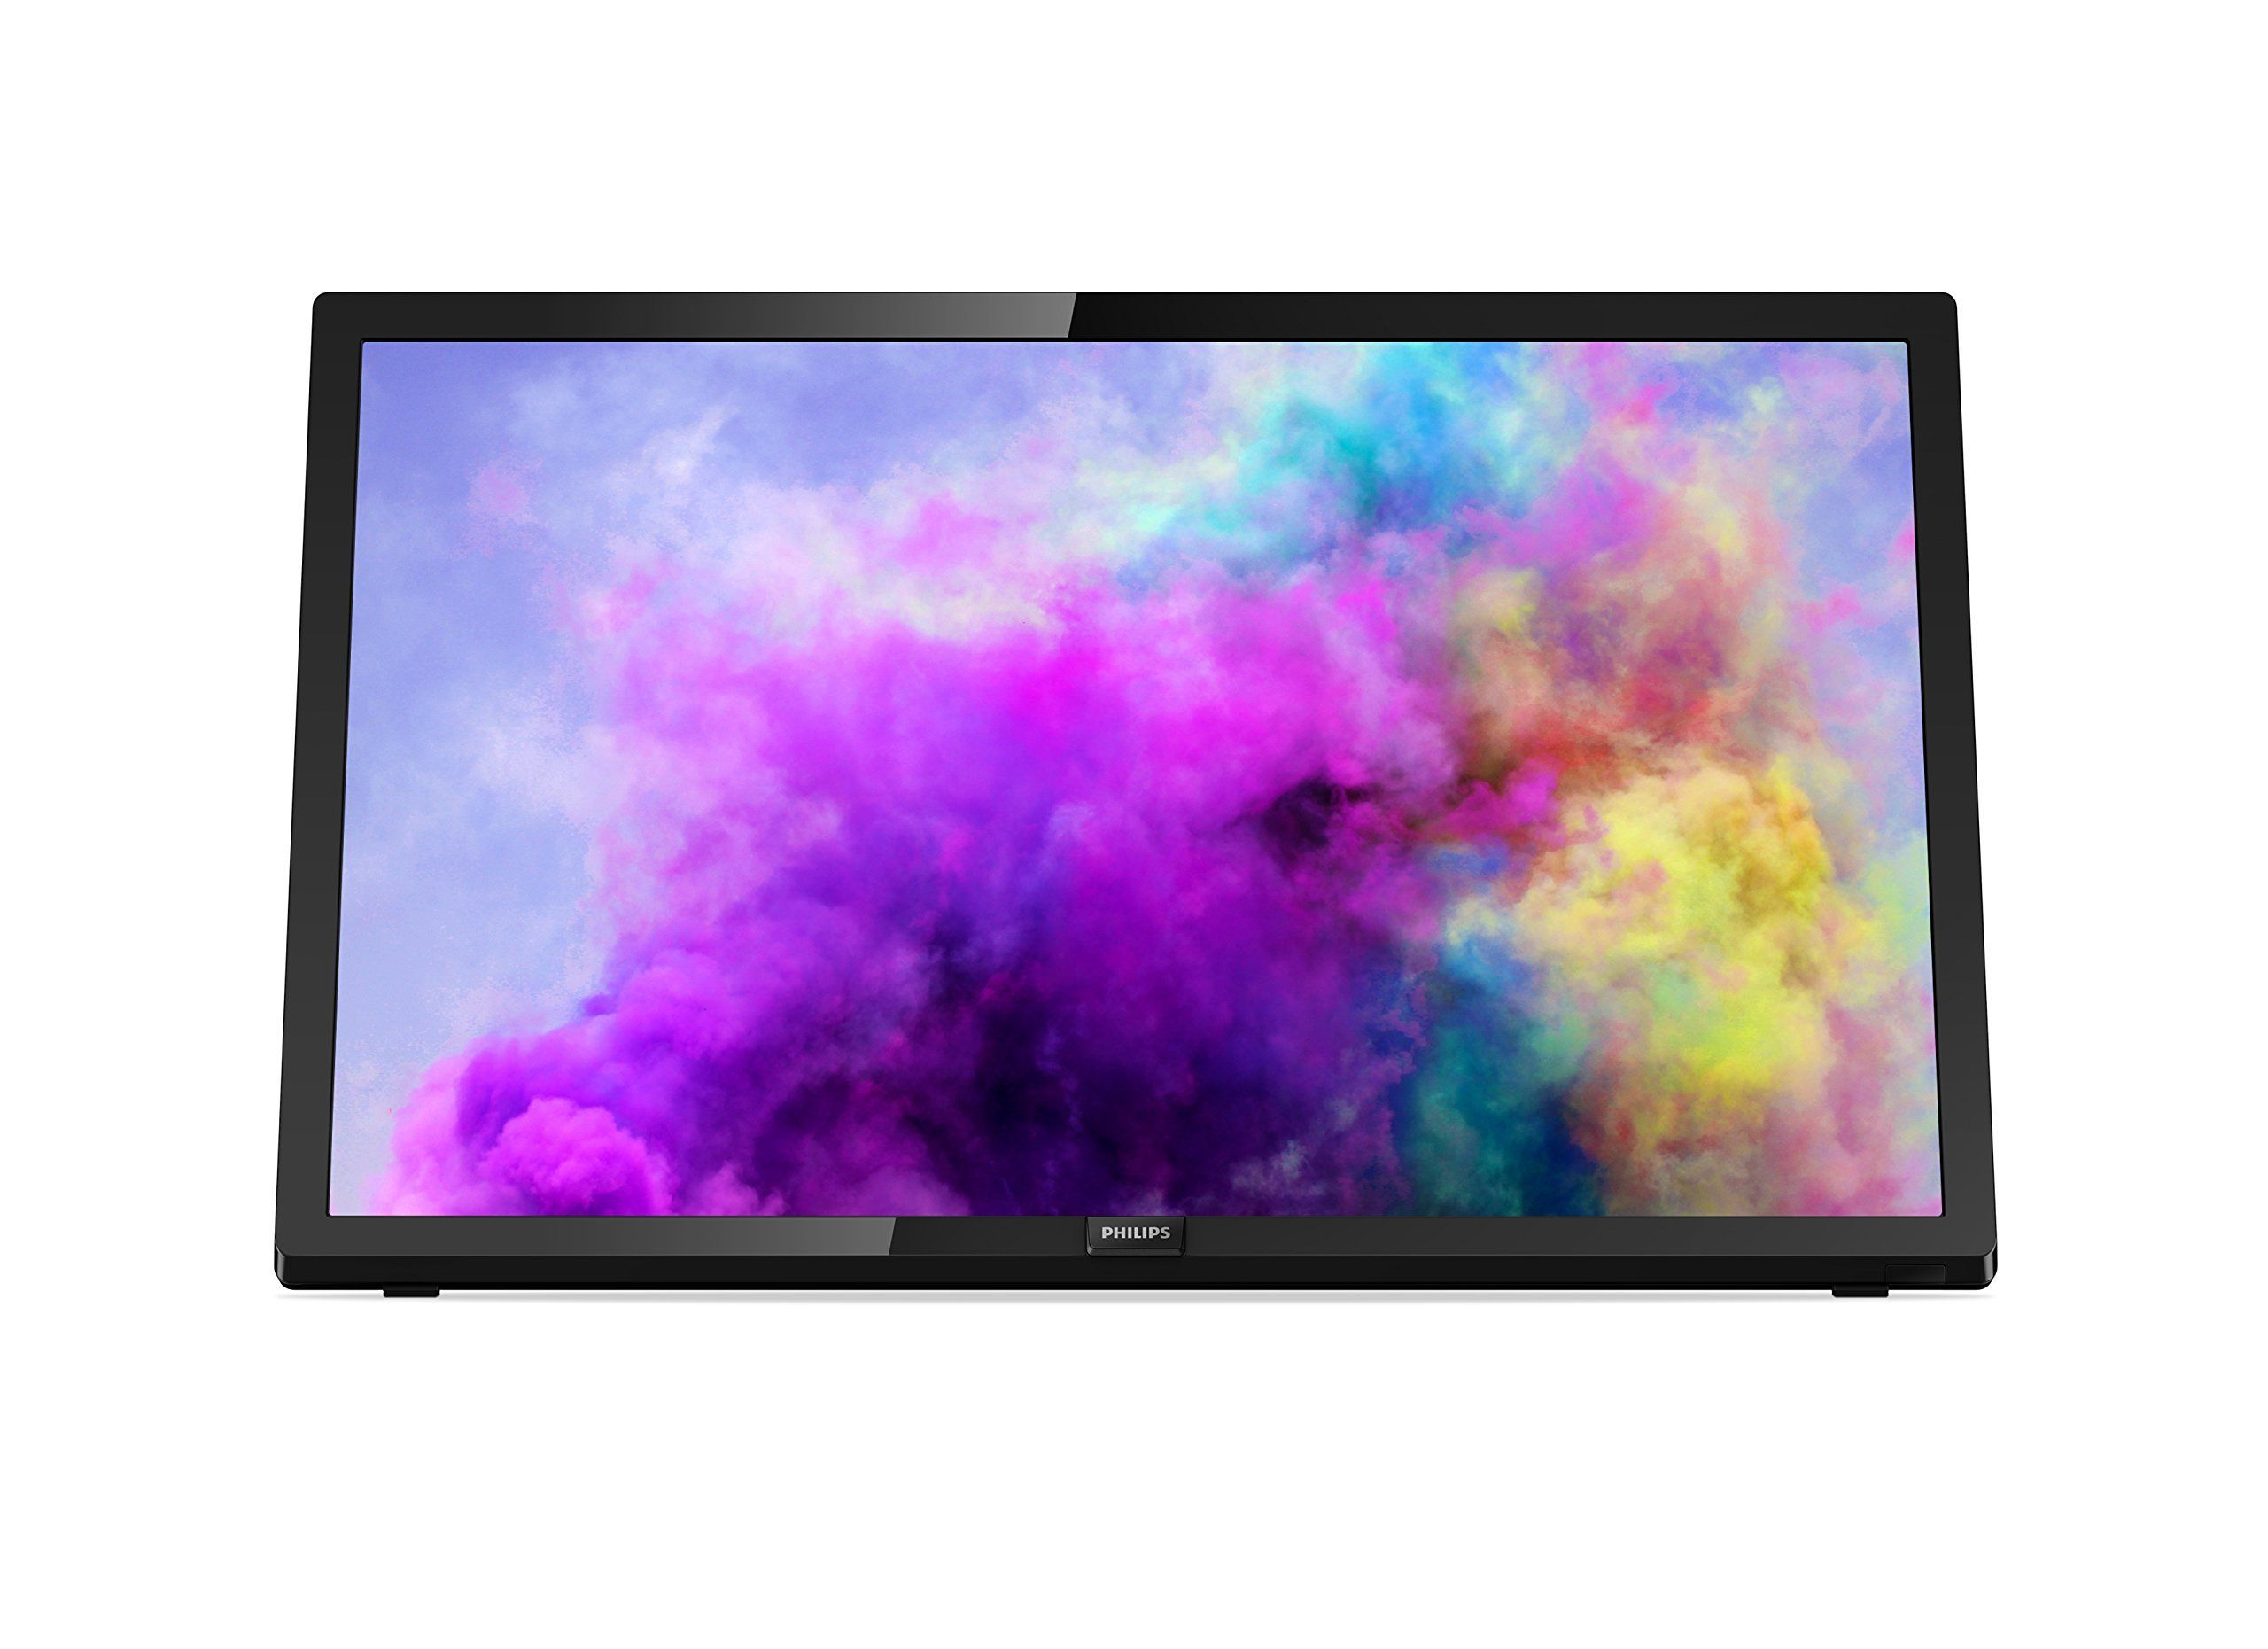 Philips 24pft5303 05 24 Inch Full Hd Led Tv With Freeview Hd Black 2018 Model With Images Led Tv Philips Panasonic Tvs